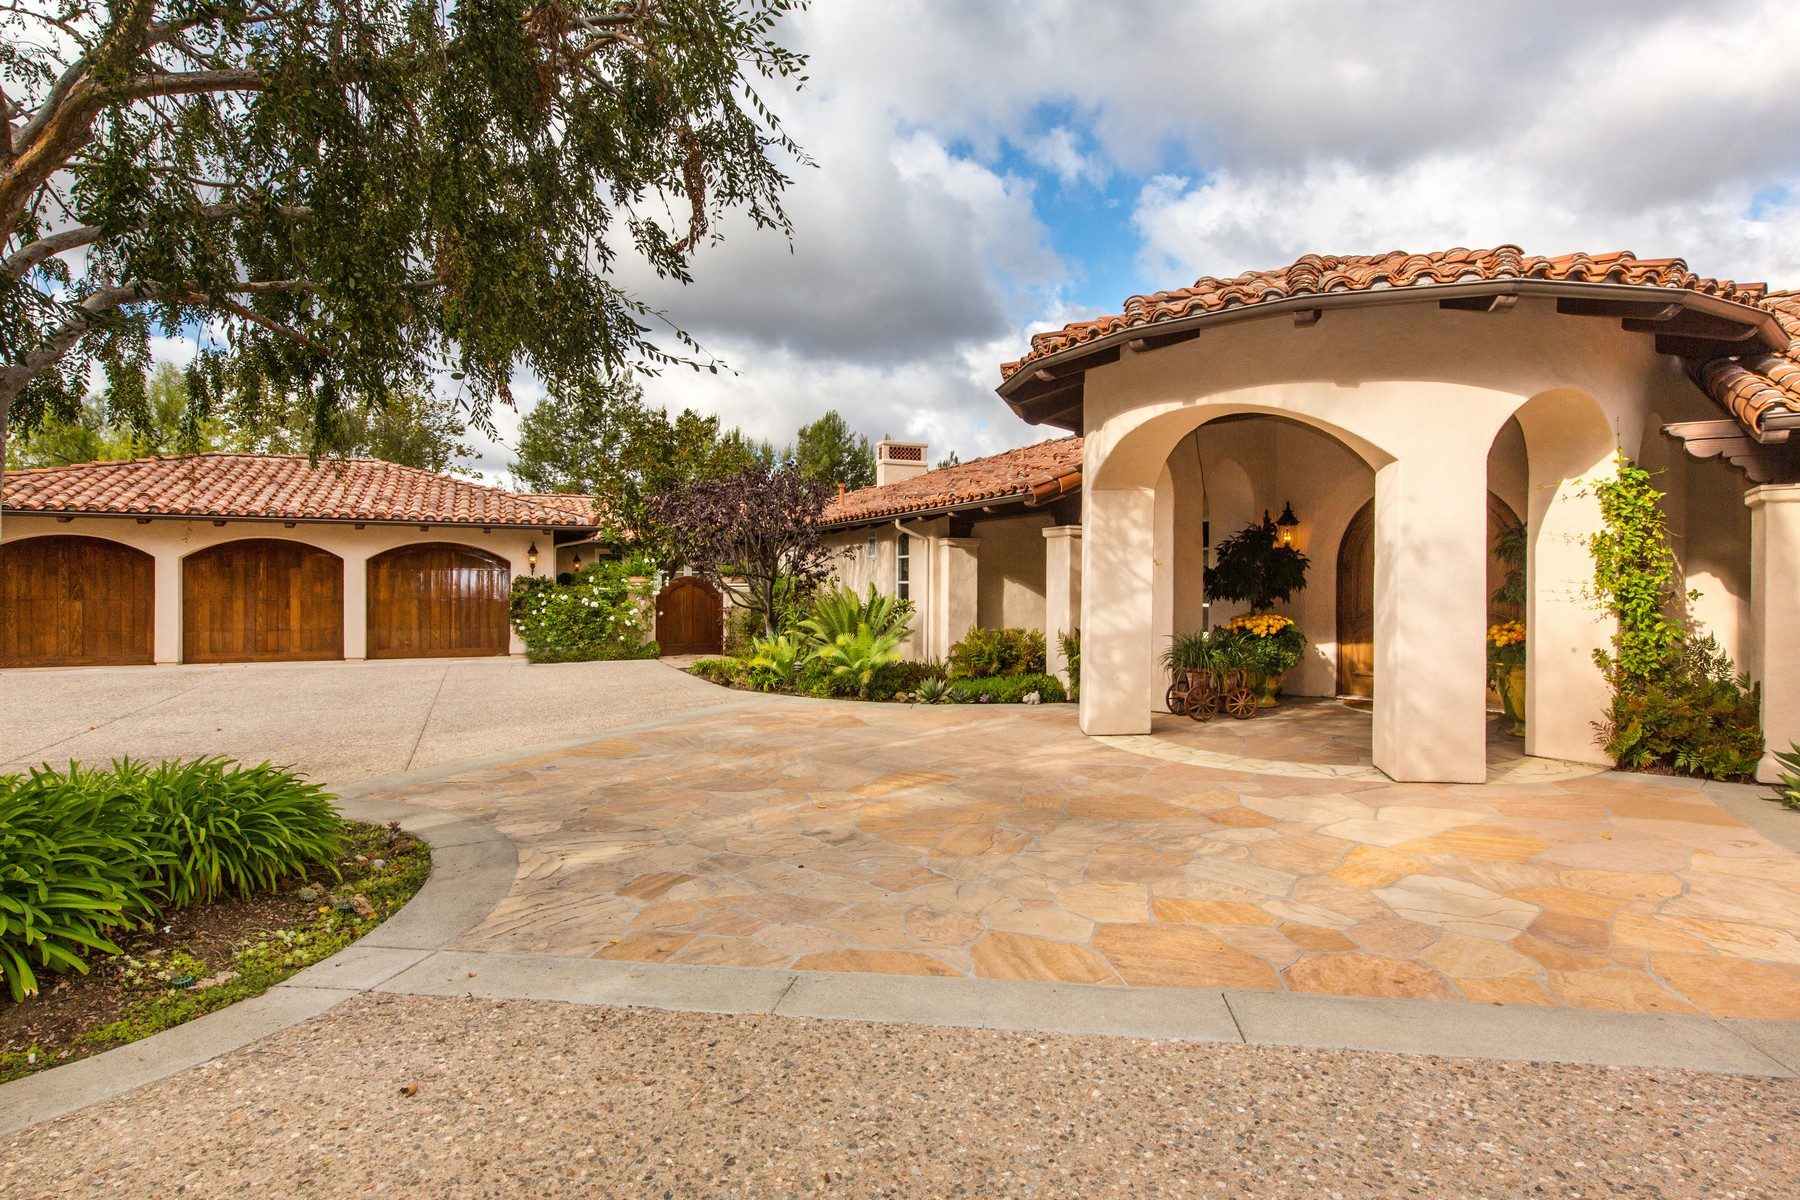 Additional photo for property listing at San Elijo 5546 San Elijo Rancho Santa Fe, 加利福尼亚州 92067 美国